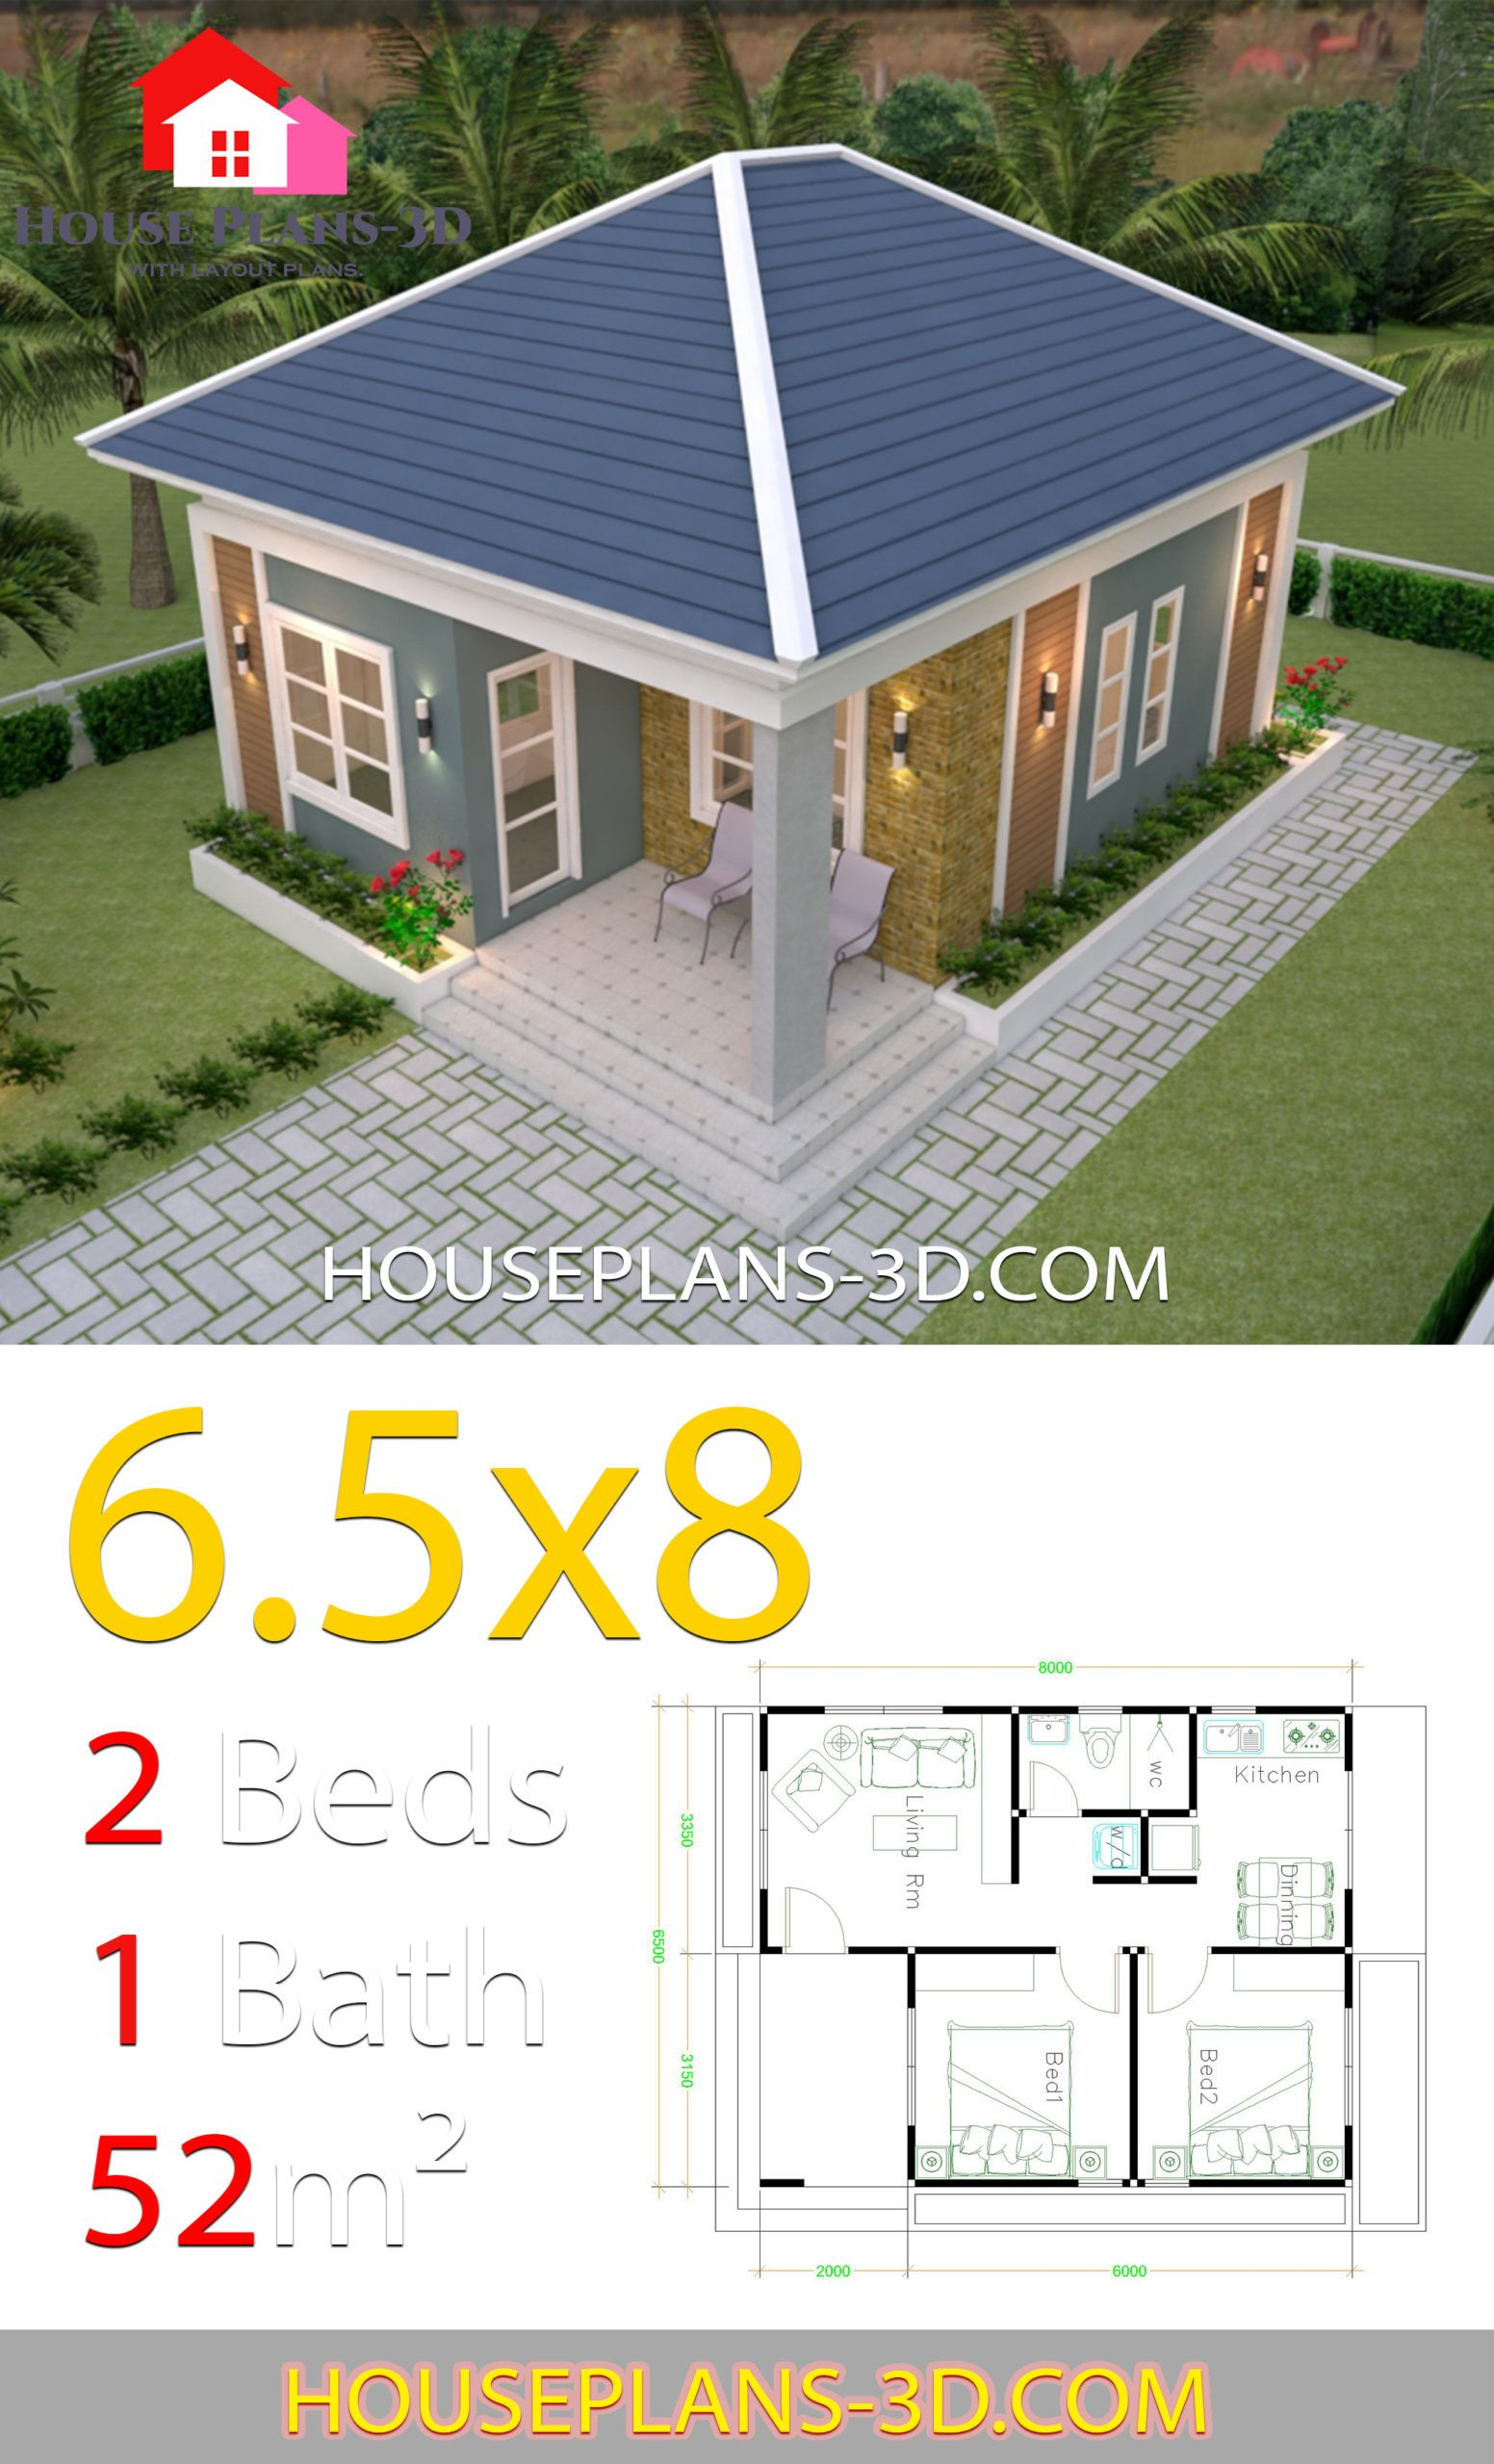 House Design Plans 6 5x8 With 2 Bedrooms Hip Roof House Plans 3d Small House Design Philippines Small House Design Plans House Construction Plan